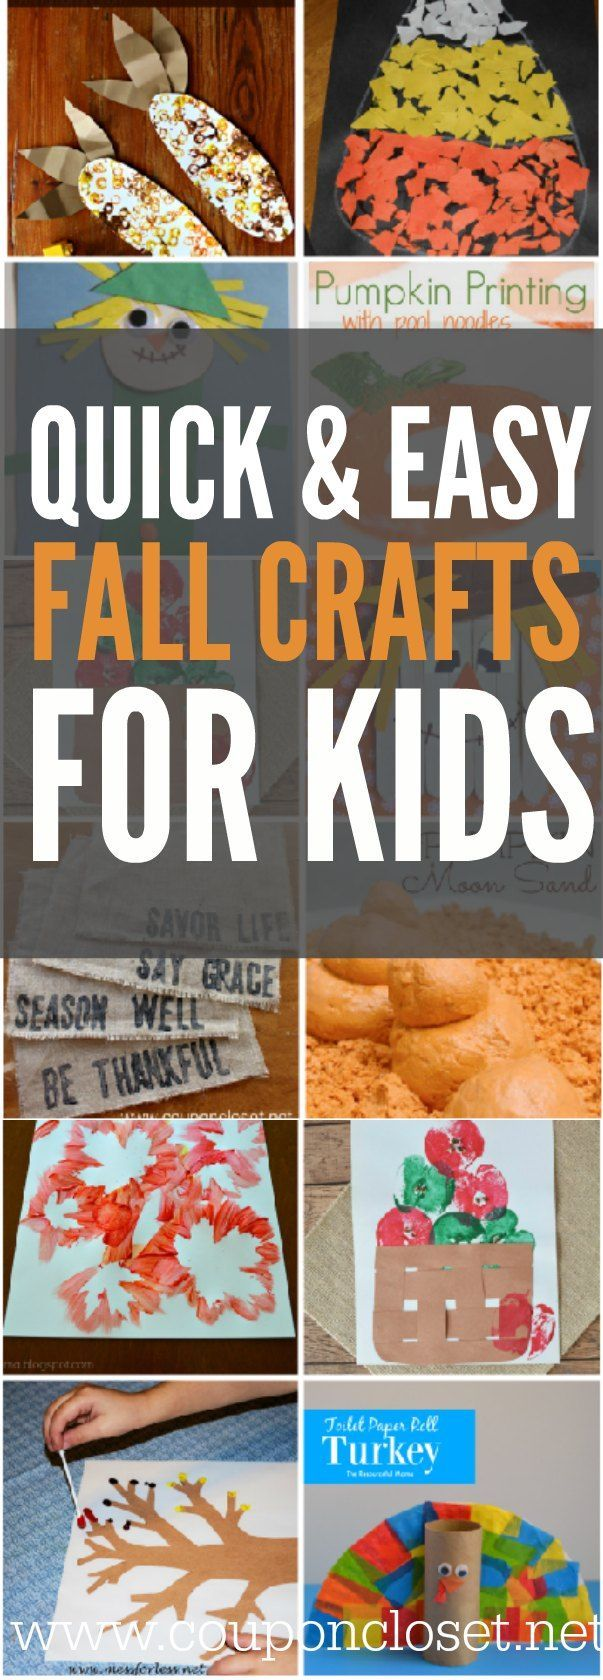 Over 15 of the best Fall Crafts for Kids - Quick and Easy Fall crafts for…